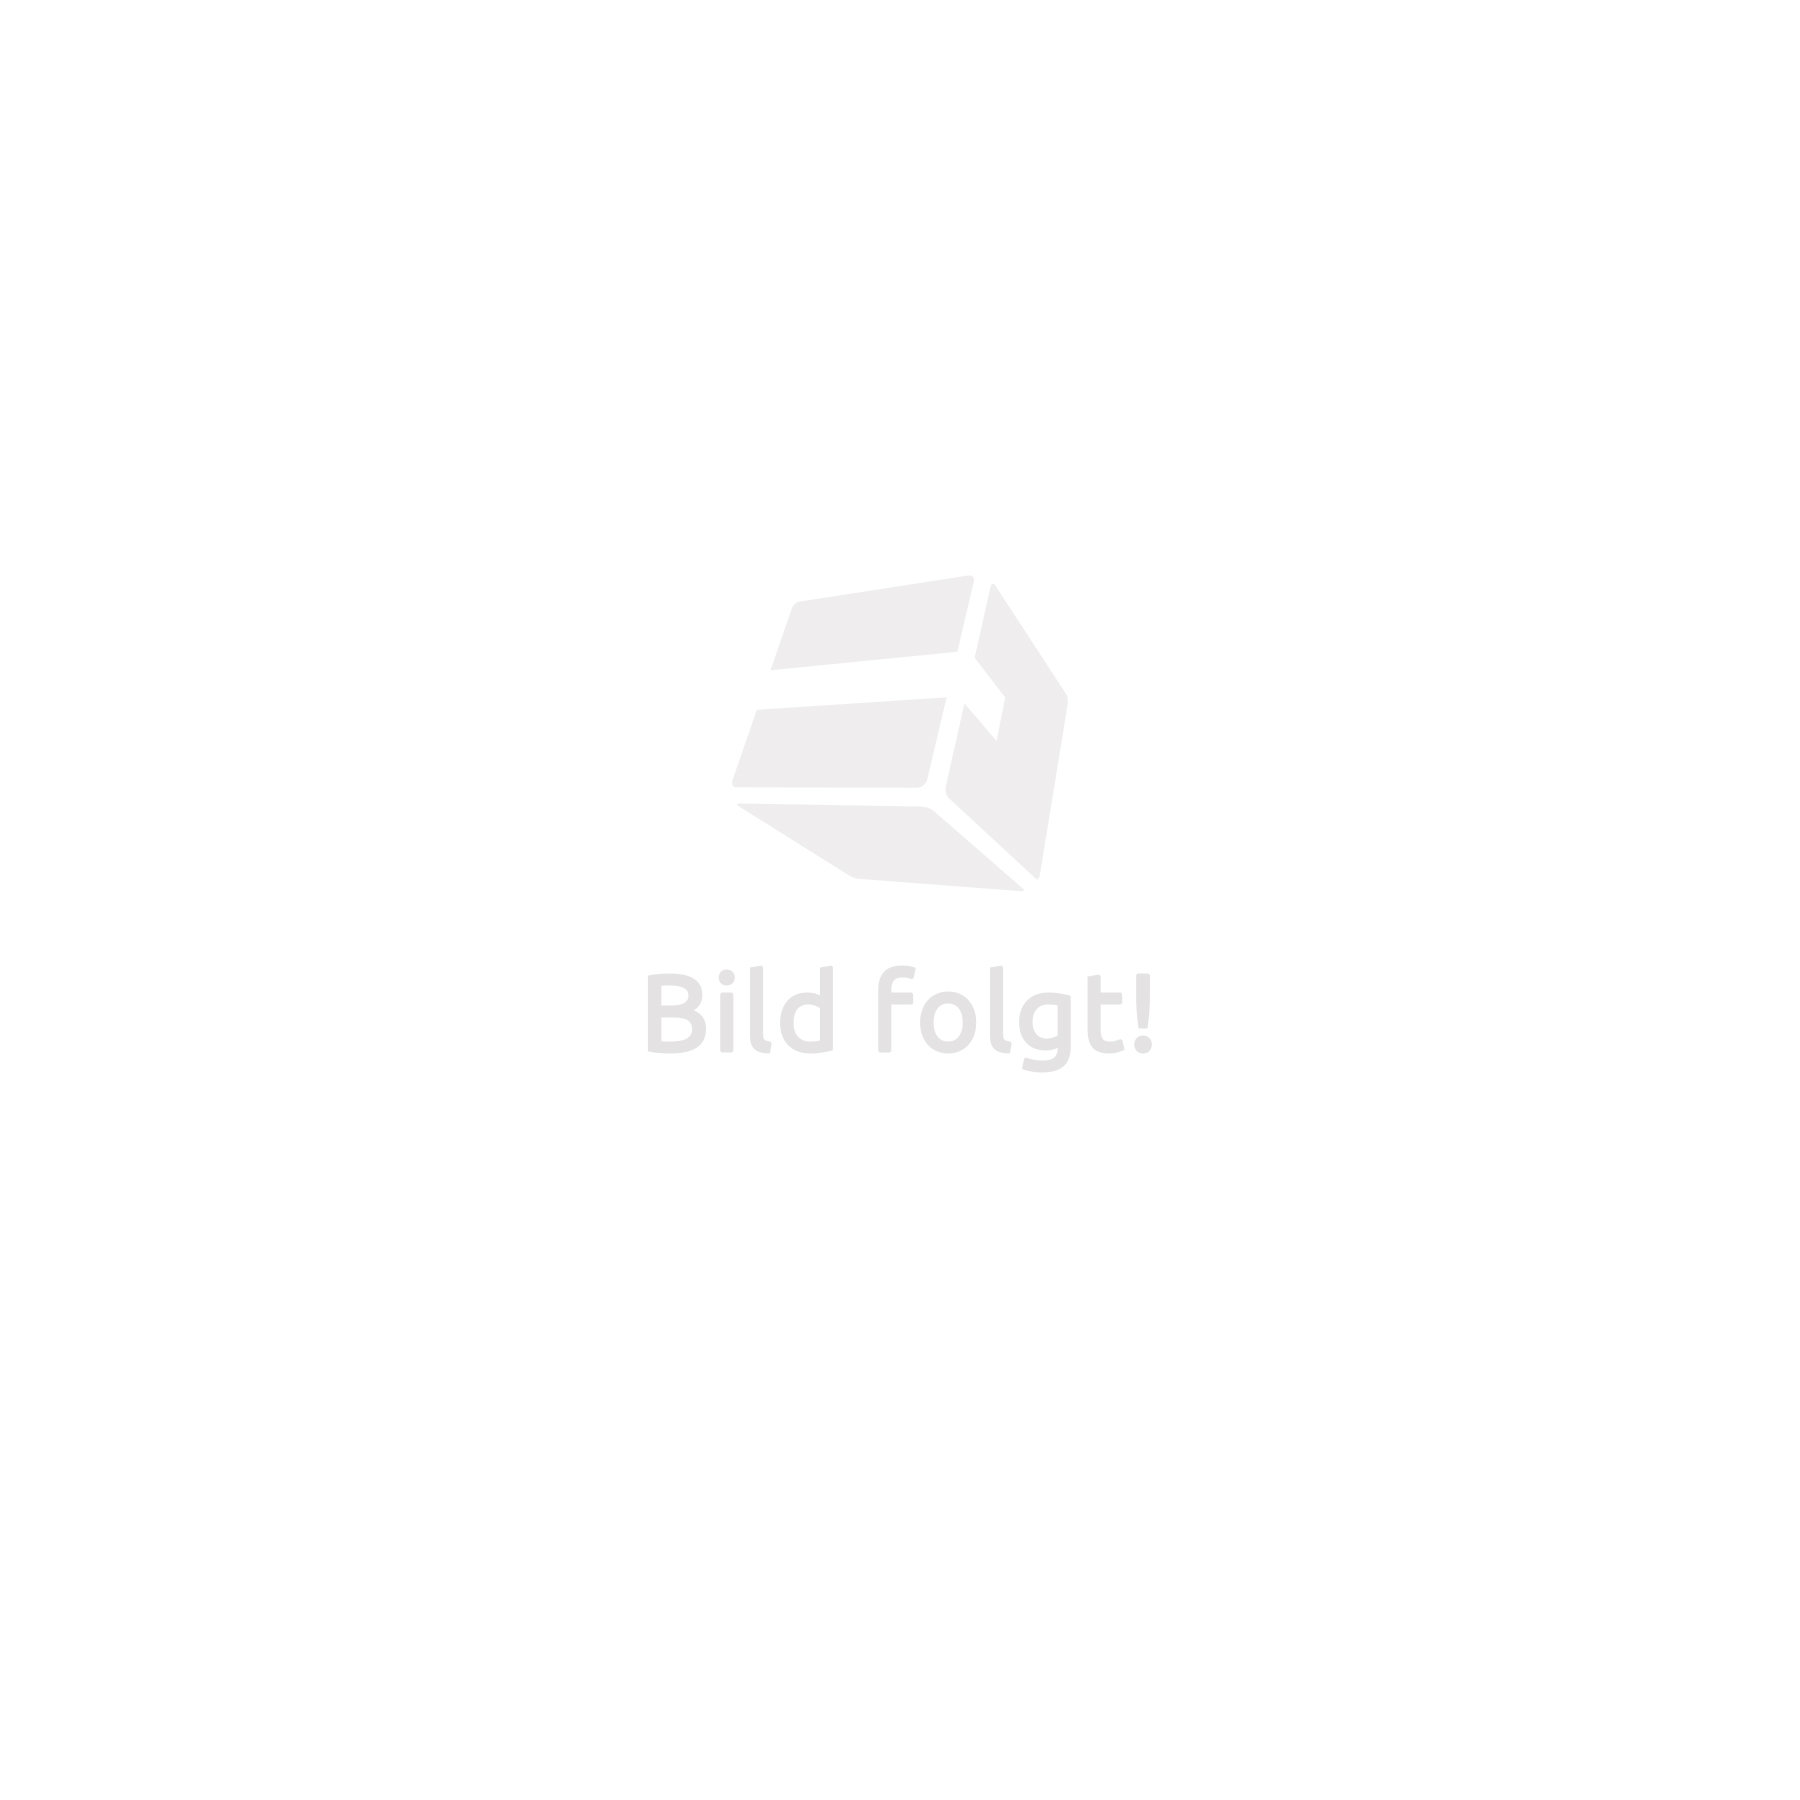 Chaise longue de jardin transat multi positions pliable for Chaise longue jardin metal